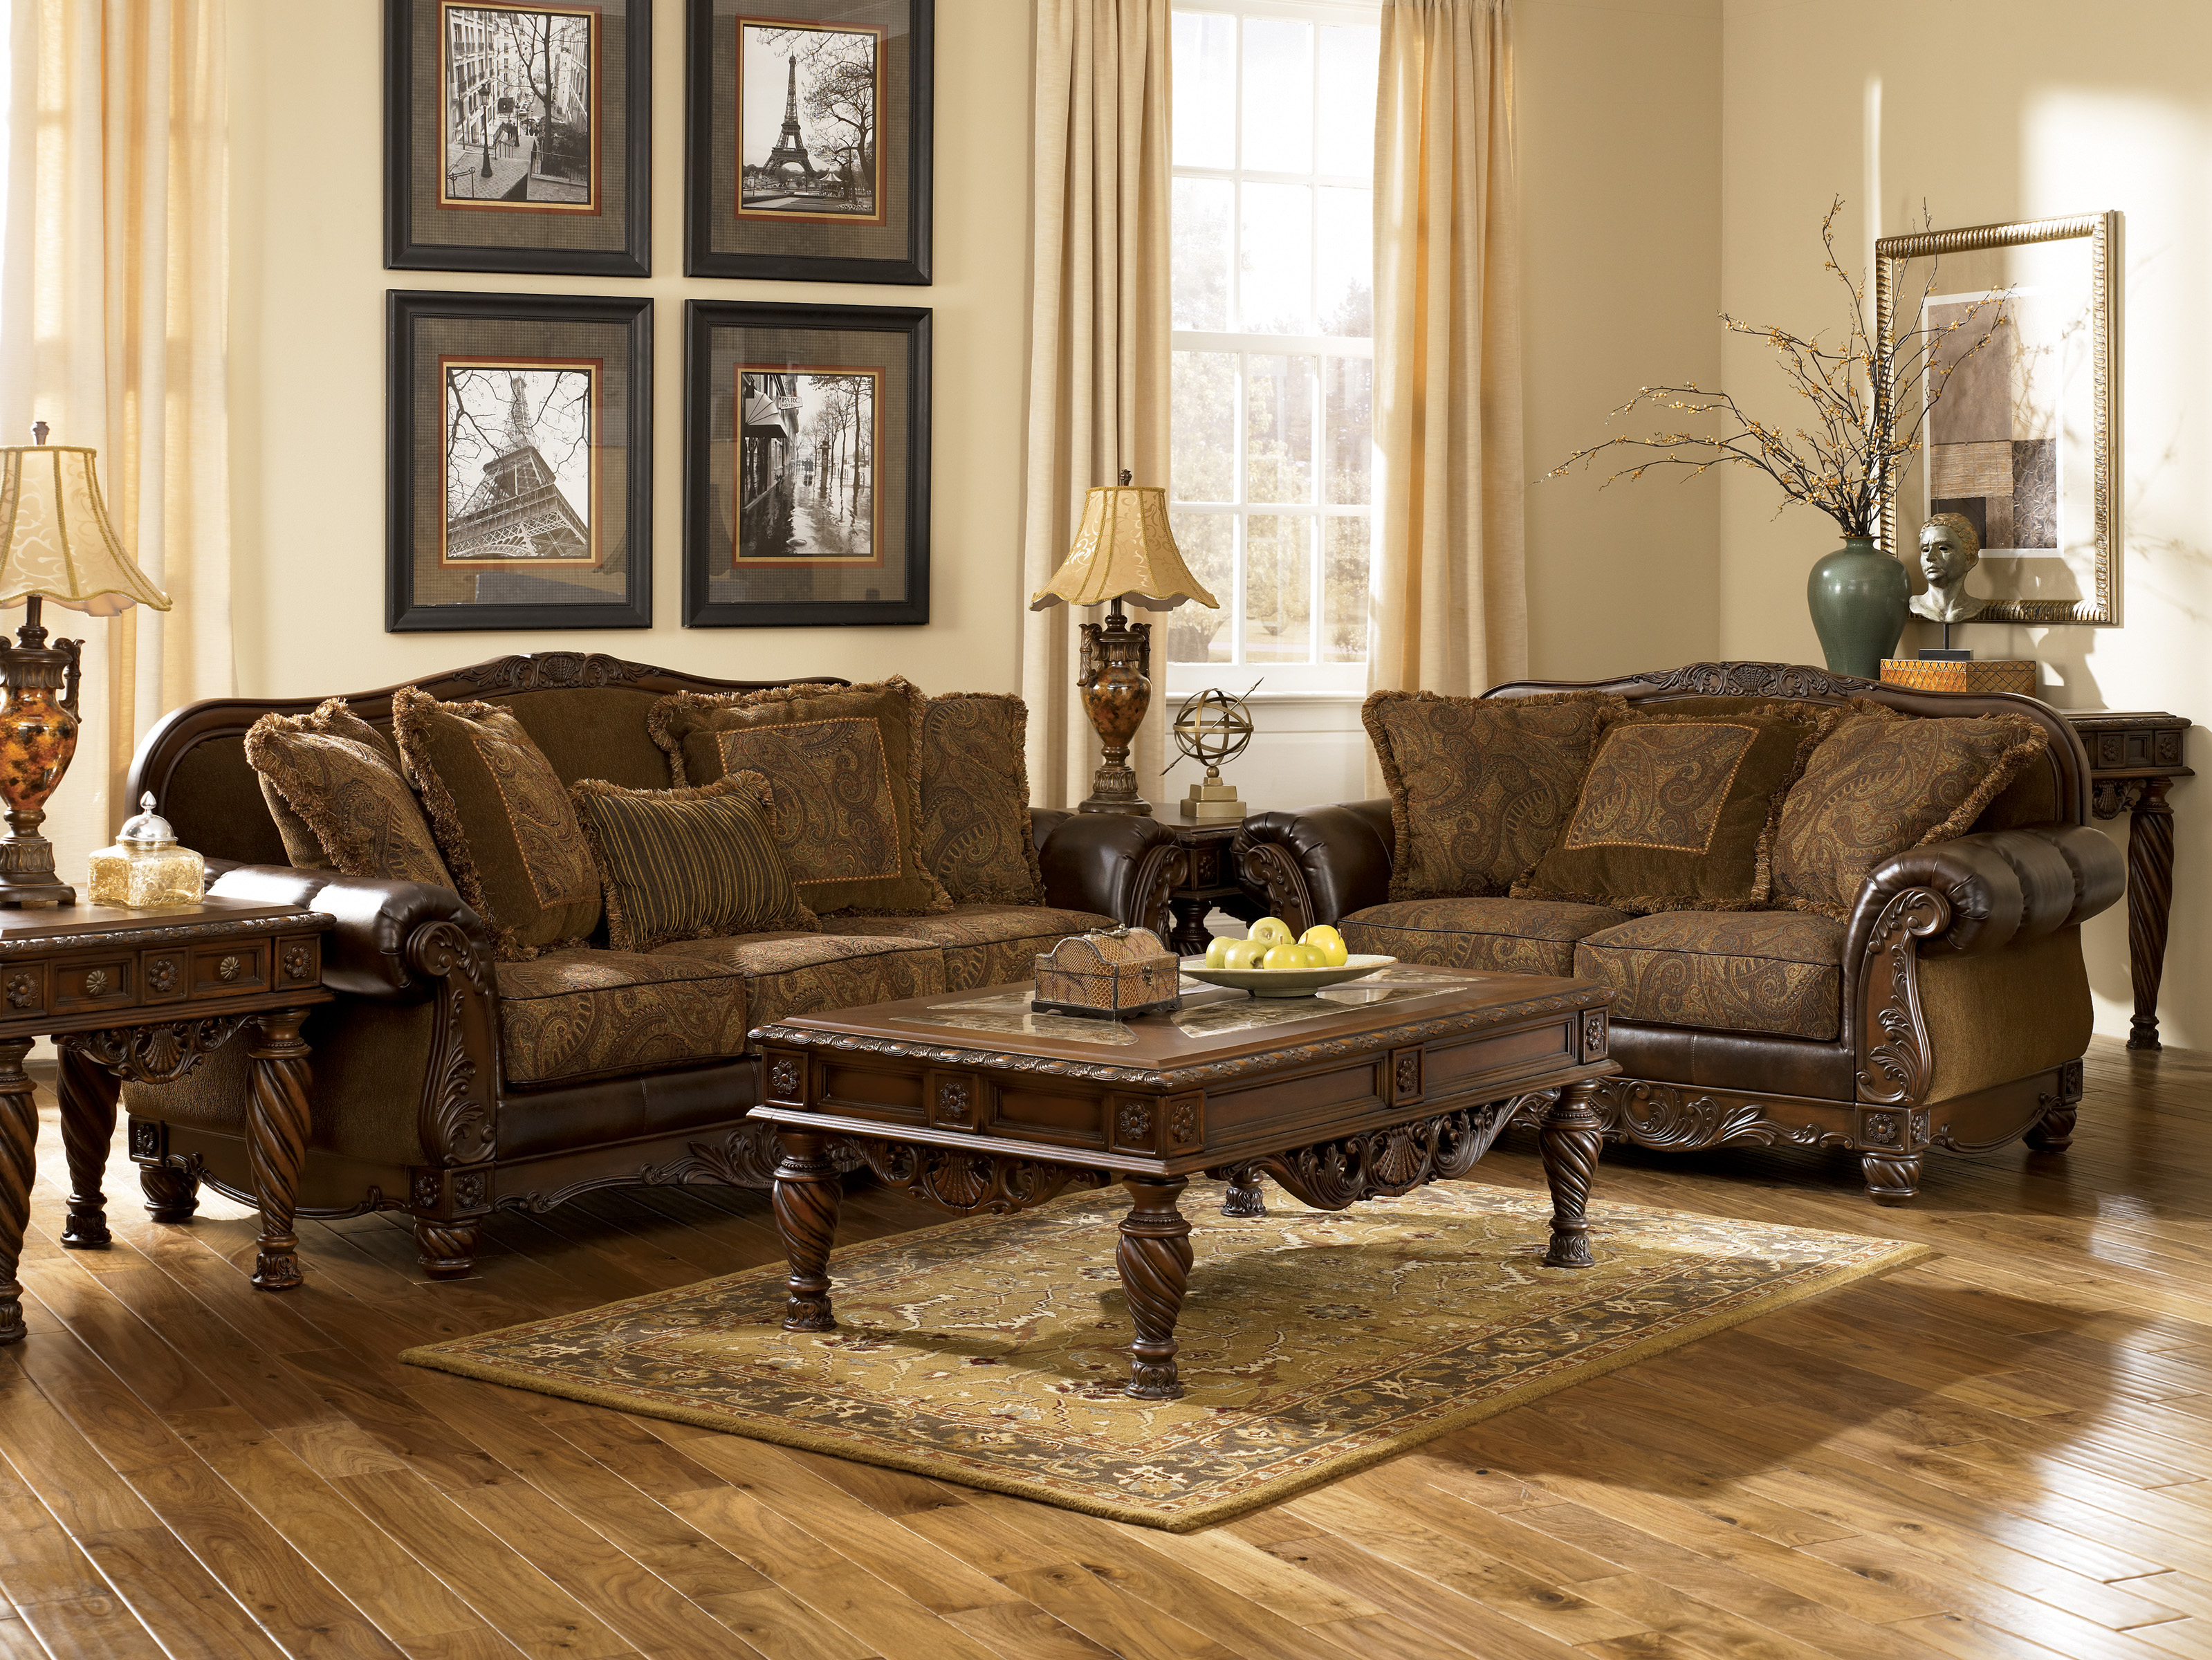 Ashley Furniture Fresco 63100 DuraBlend Antique Living